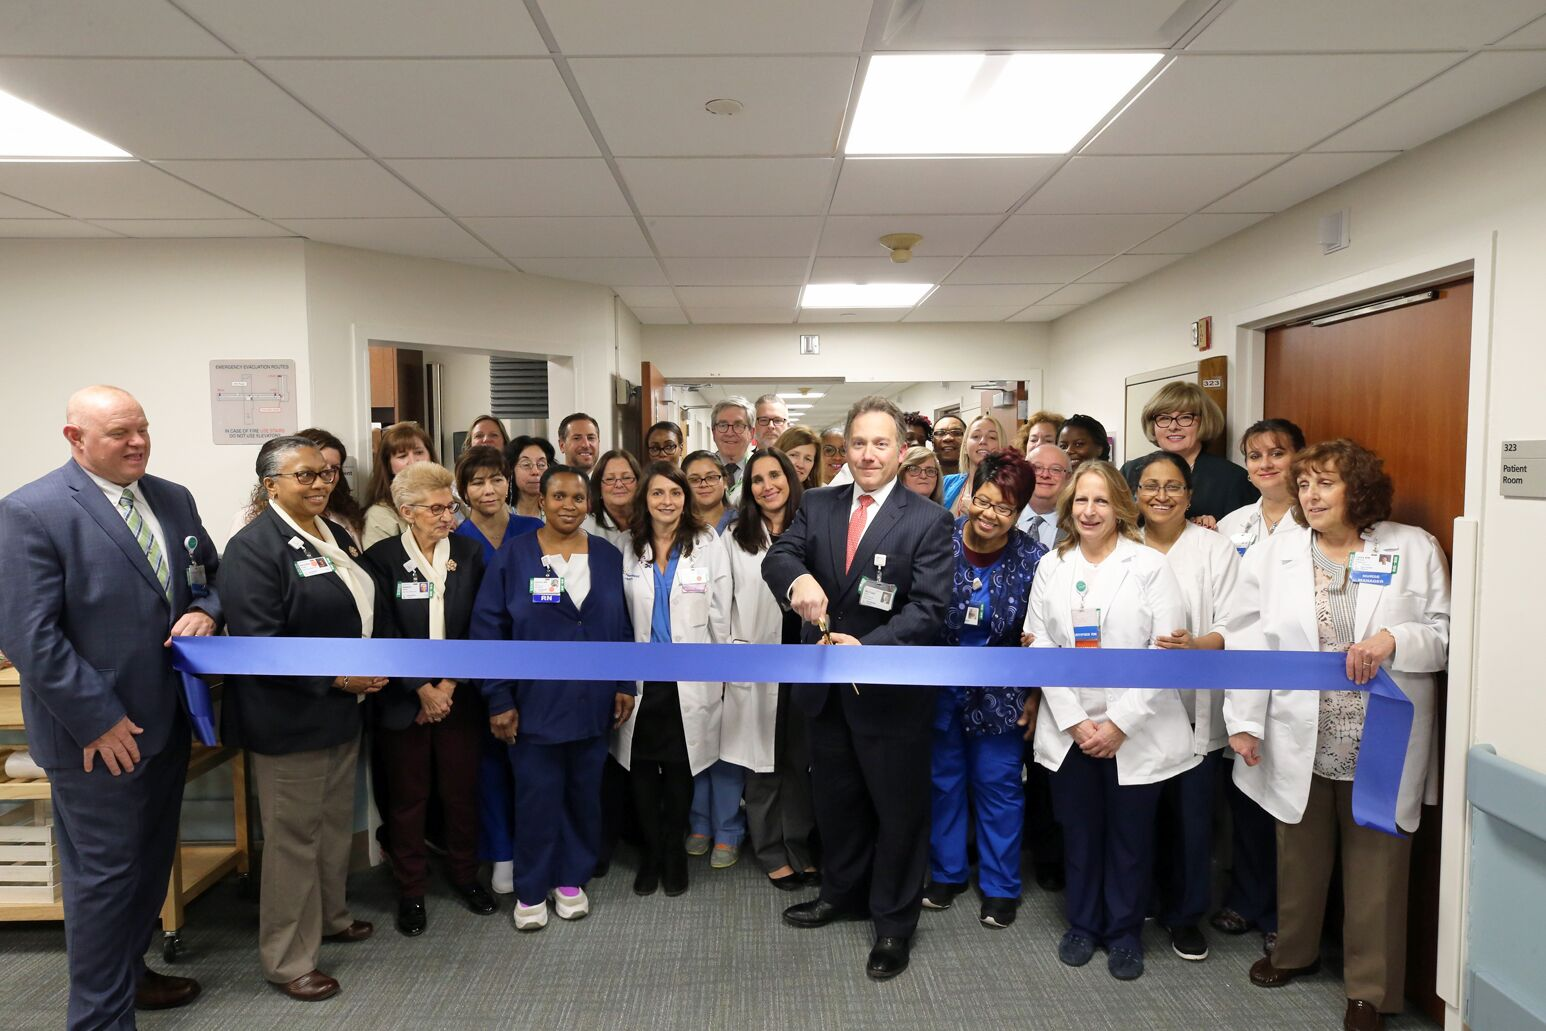 Plainview Hospital executive director Michael Fener cuts the ribbon in newly renovated telemetry unit